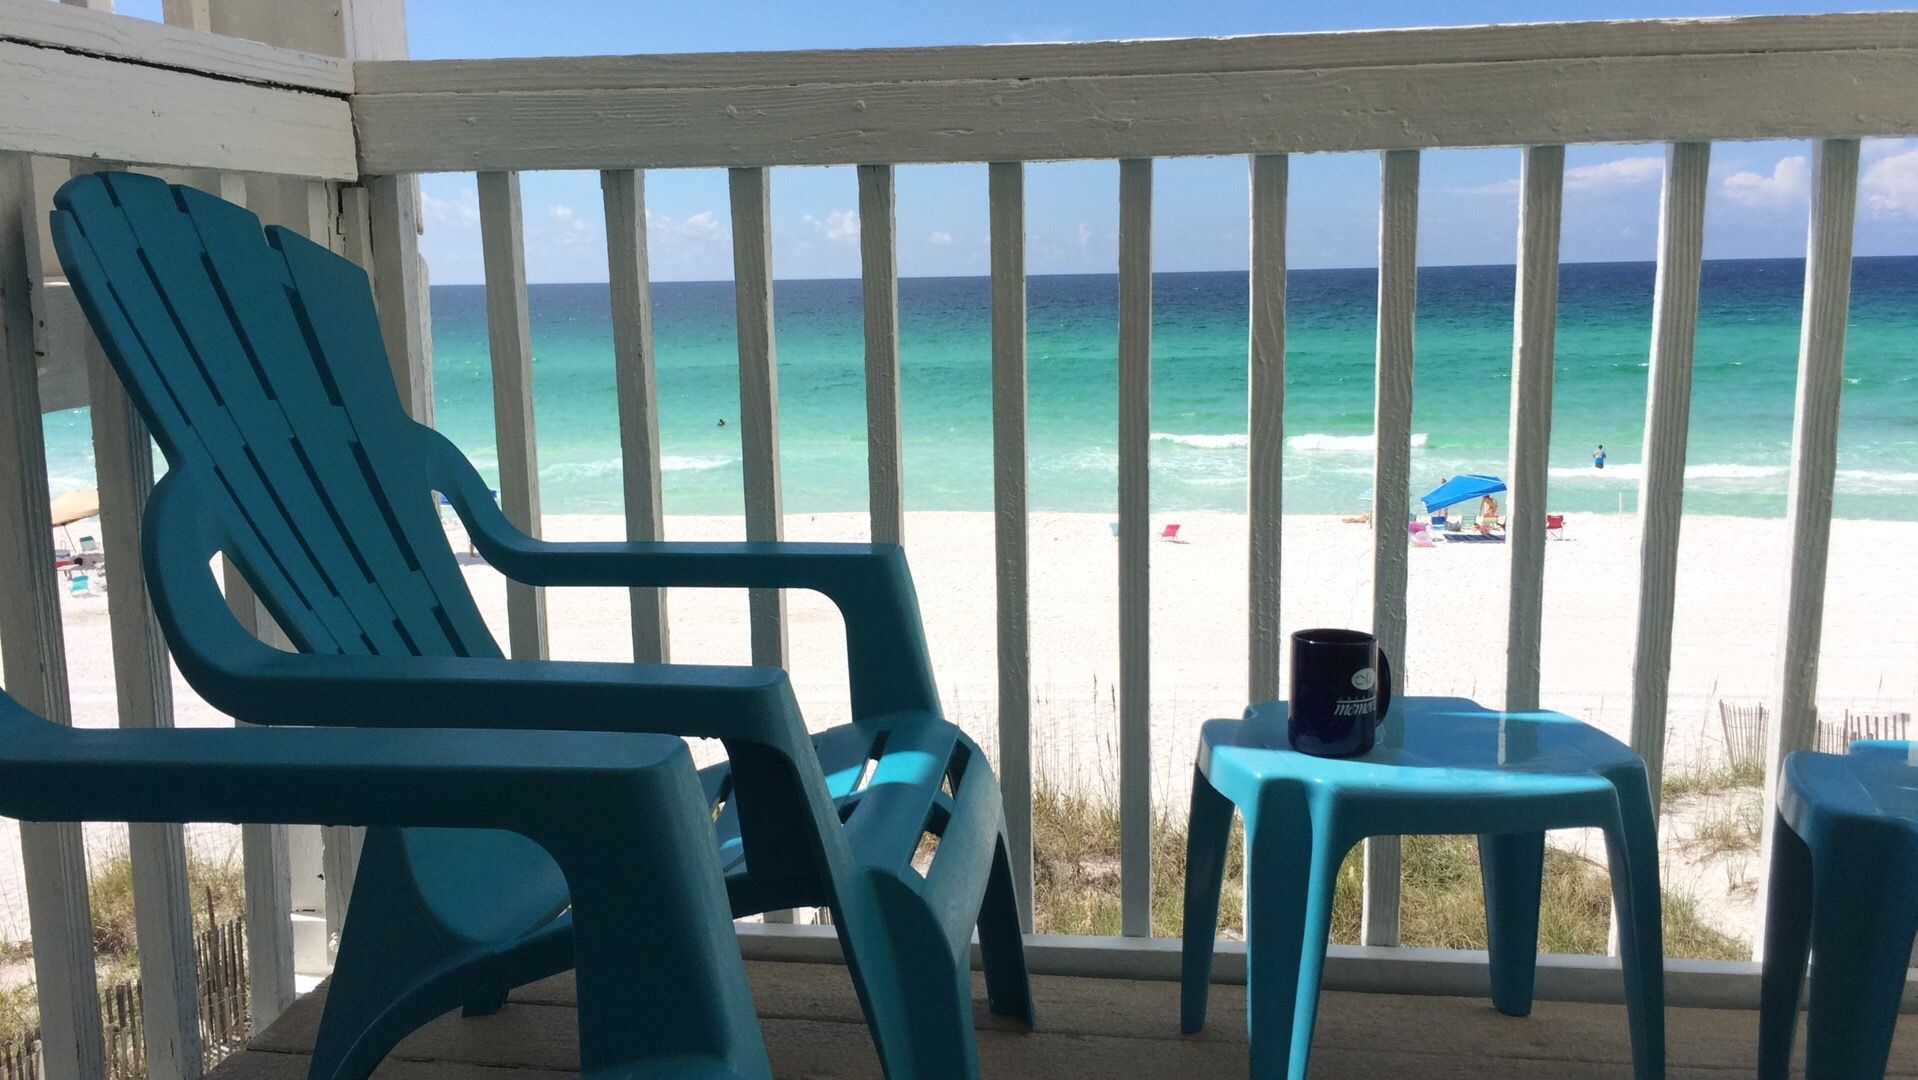 Patio Furniture San Destin Fl: Beachfront Rentals, Florida